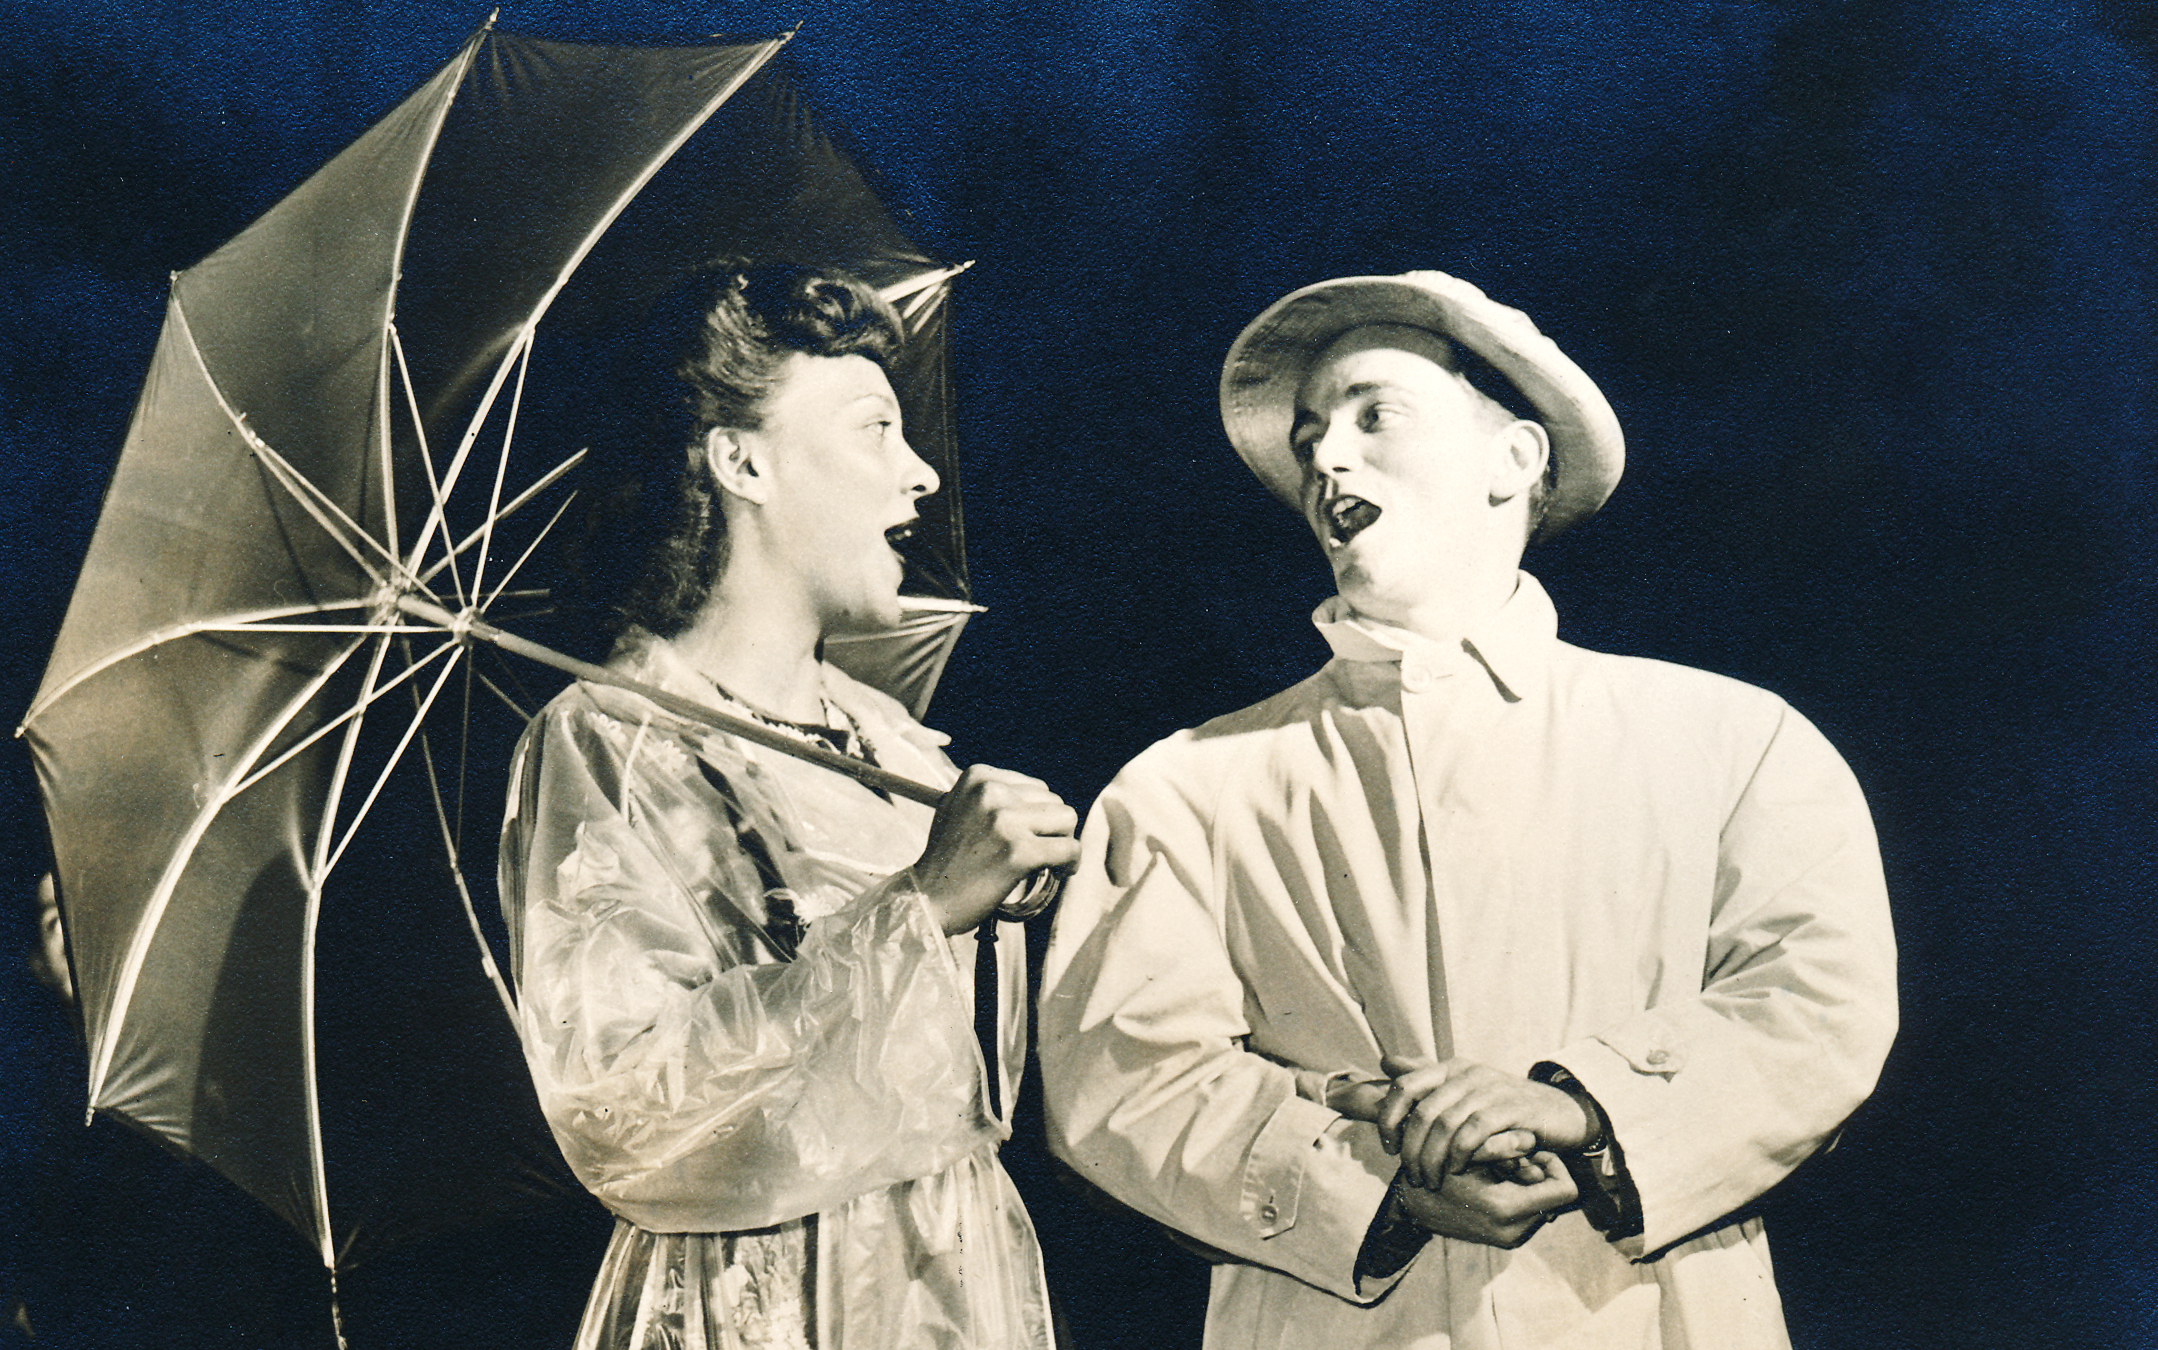 Barbara and Johnny Kirby in  After Hours  at The Pittsburgh Playhouse (1946).